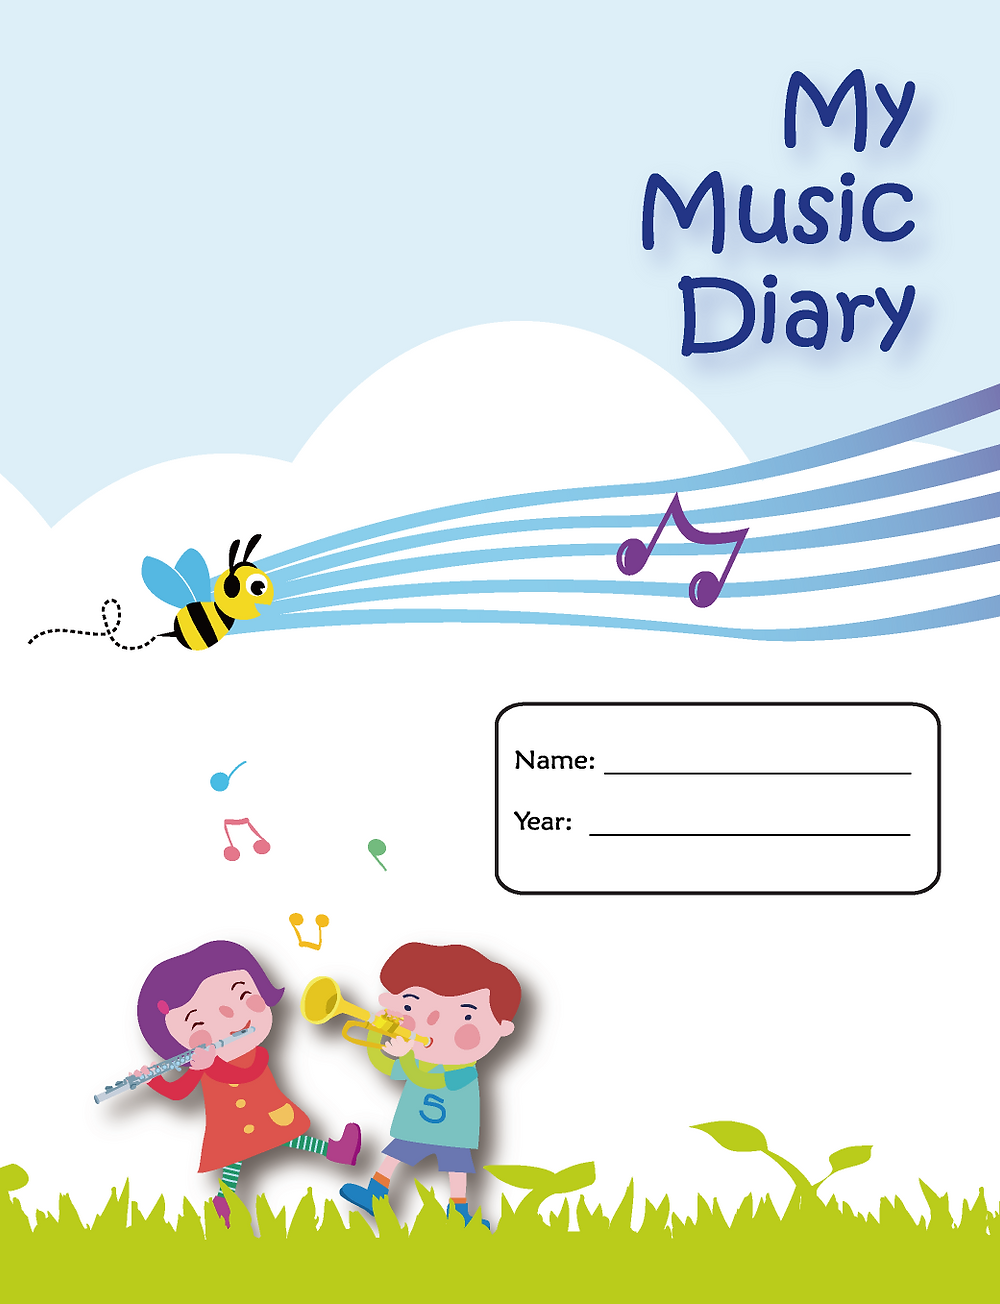 musicdiary.png